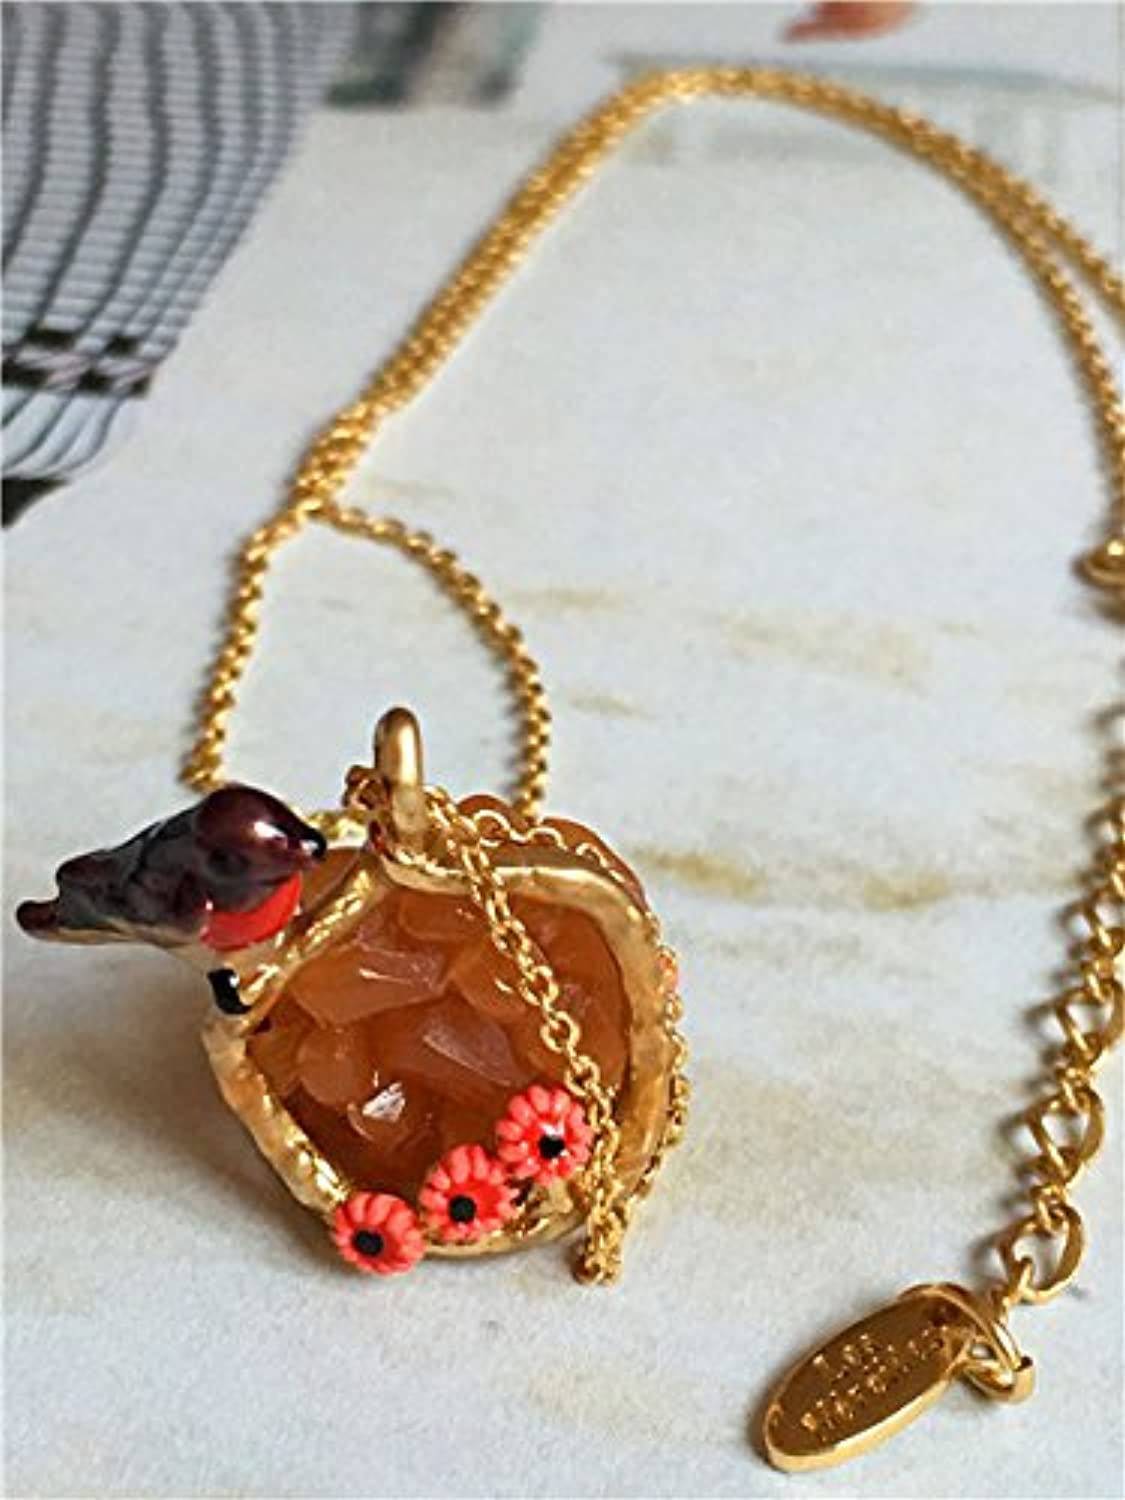 Special French Stone-Bird Short Necklace